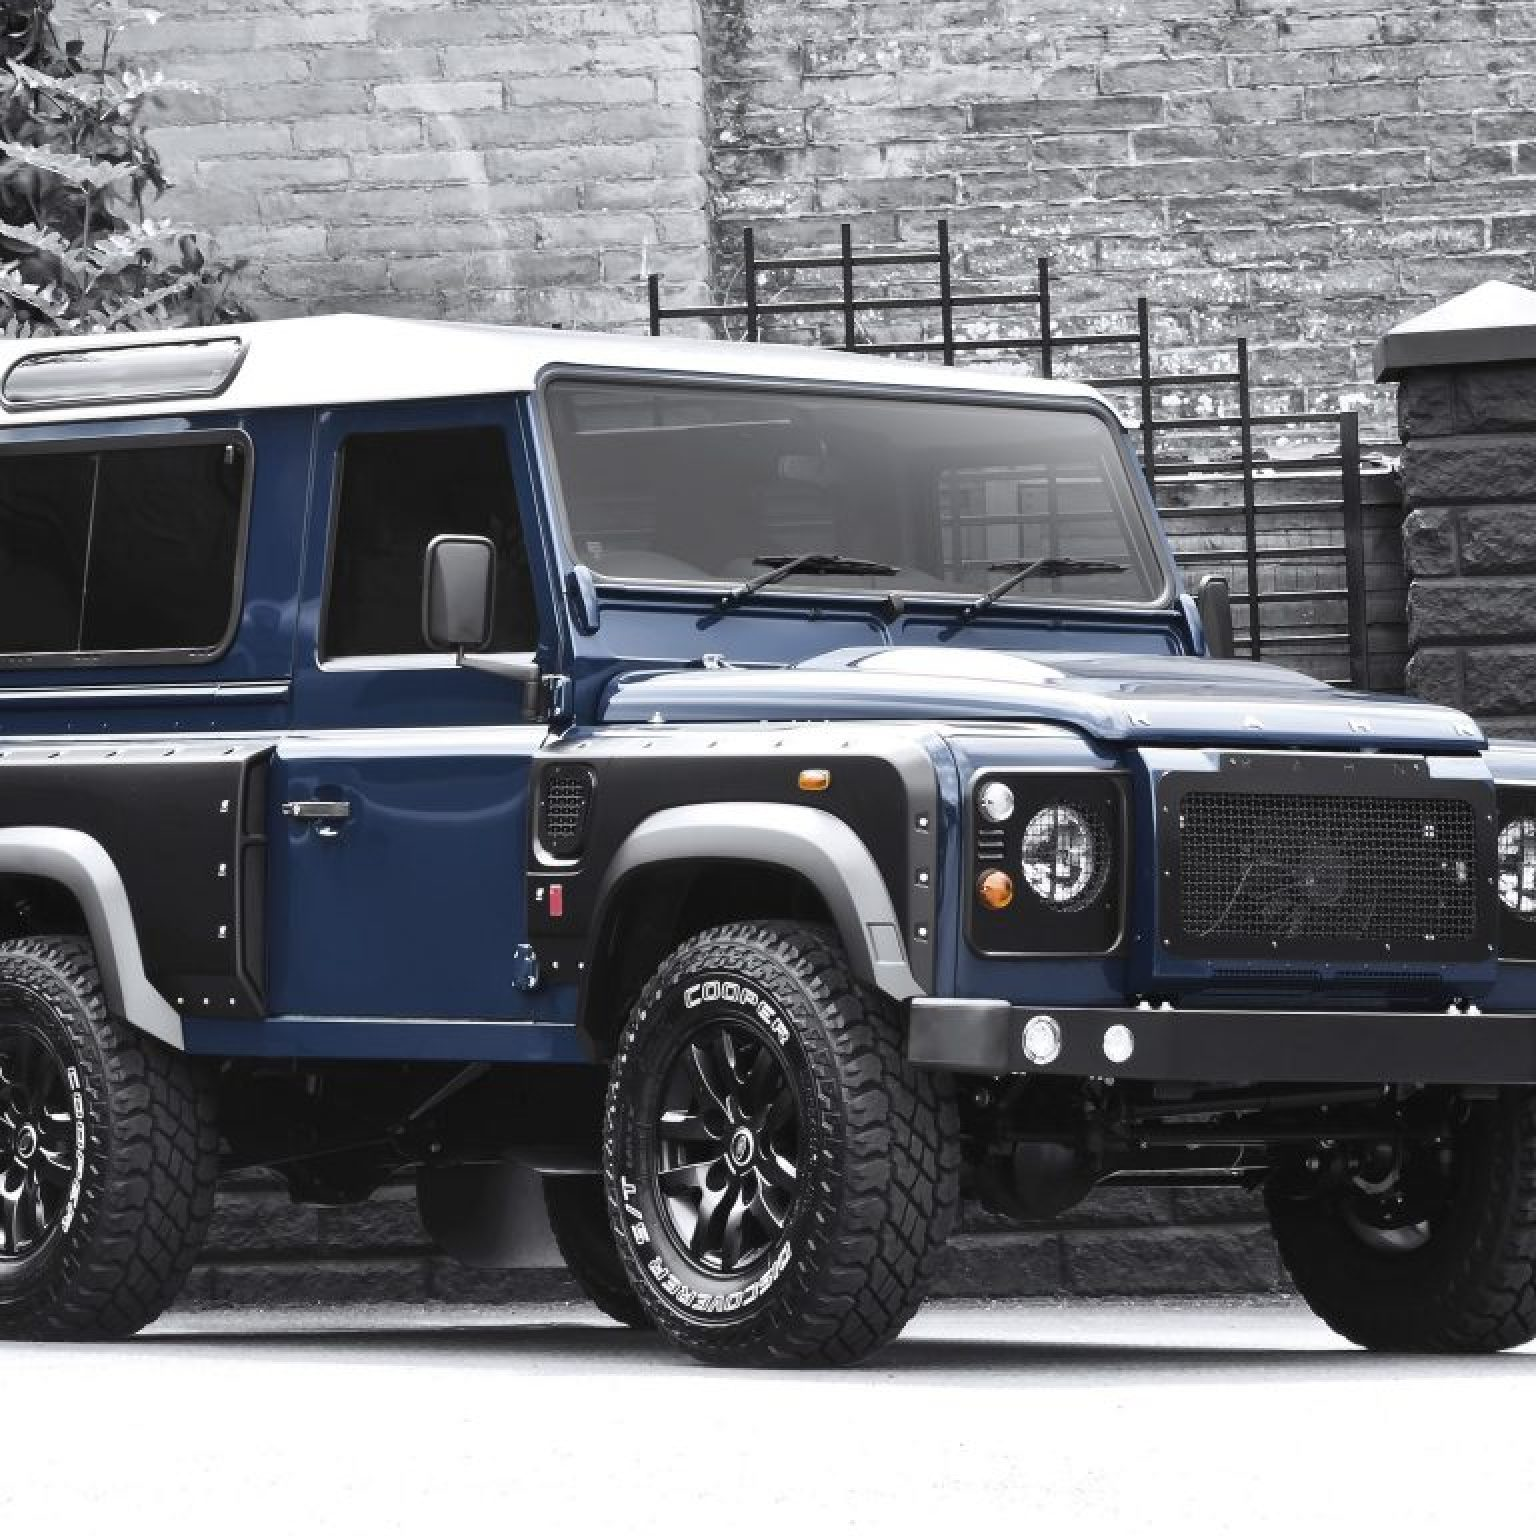 2013 Project Kahn Land Rover Defender 2-2 TDCI 90 WSI